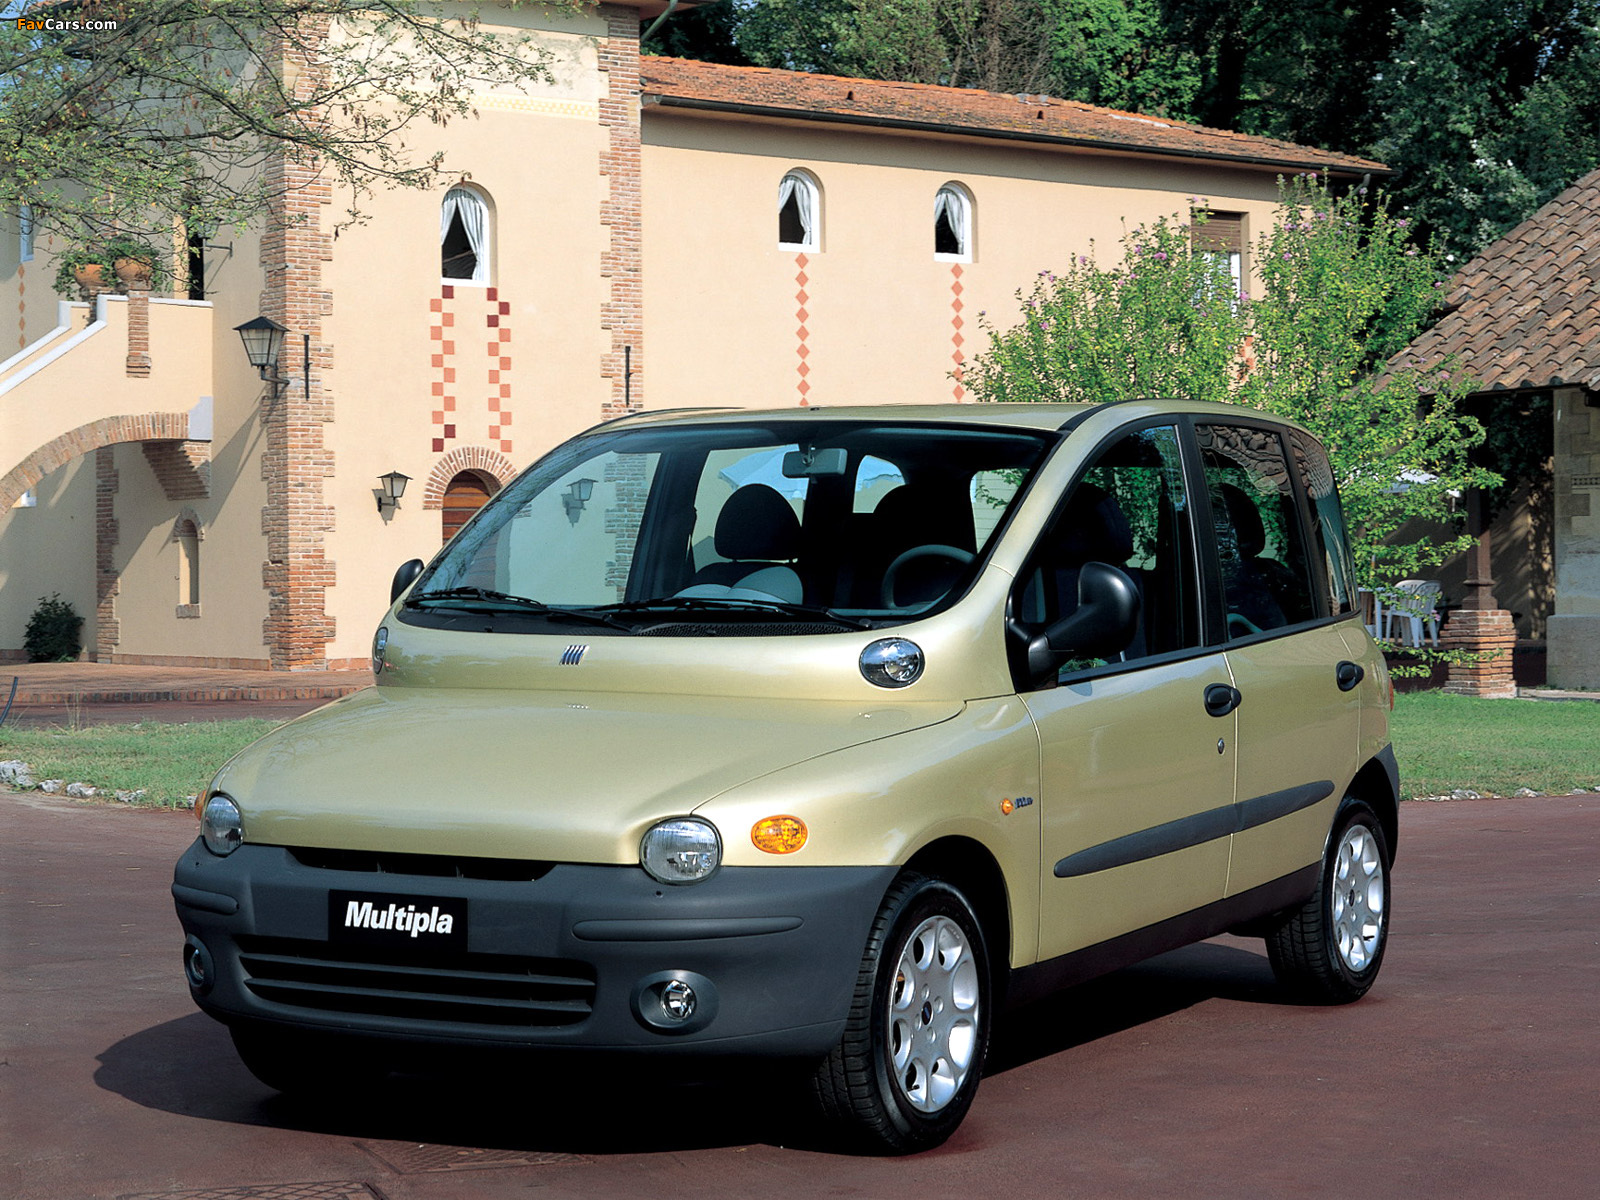 1999 fiat multipla partsopen. Black Bedroom Furniture Sets. Home Design Ideas